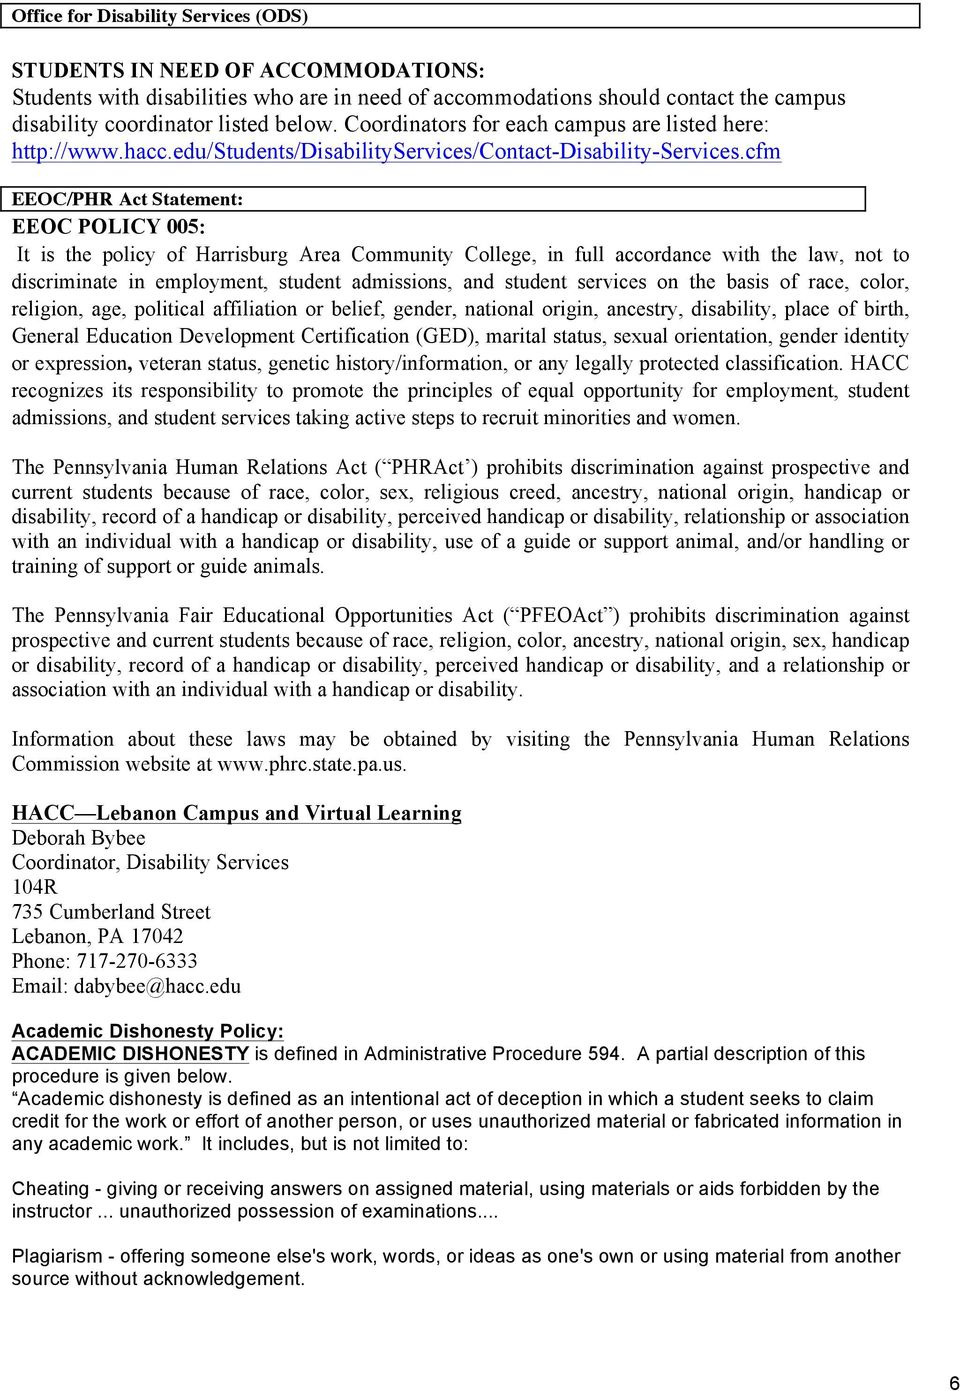 cfm EEOC/PHR Act Statement: EEOC POLICY 005: It is the policy of Harrisburg Area Community College, in full accordance with the law, not to discriminate in employment, student admissions, and student